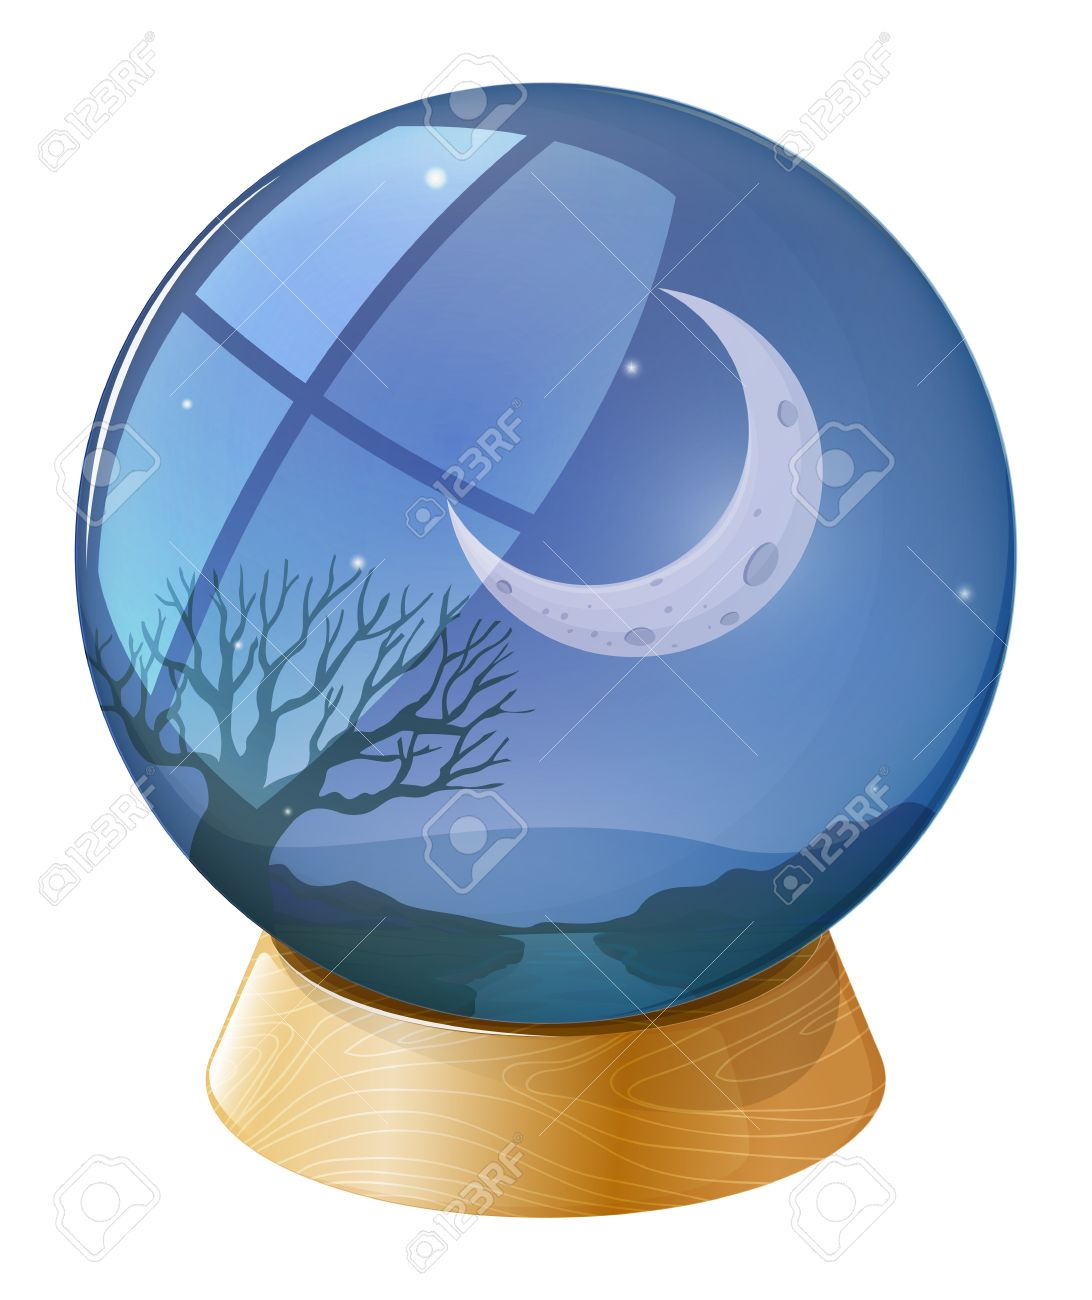 Crystal ball clipart no background.